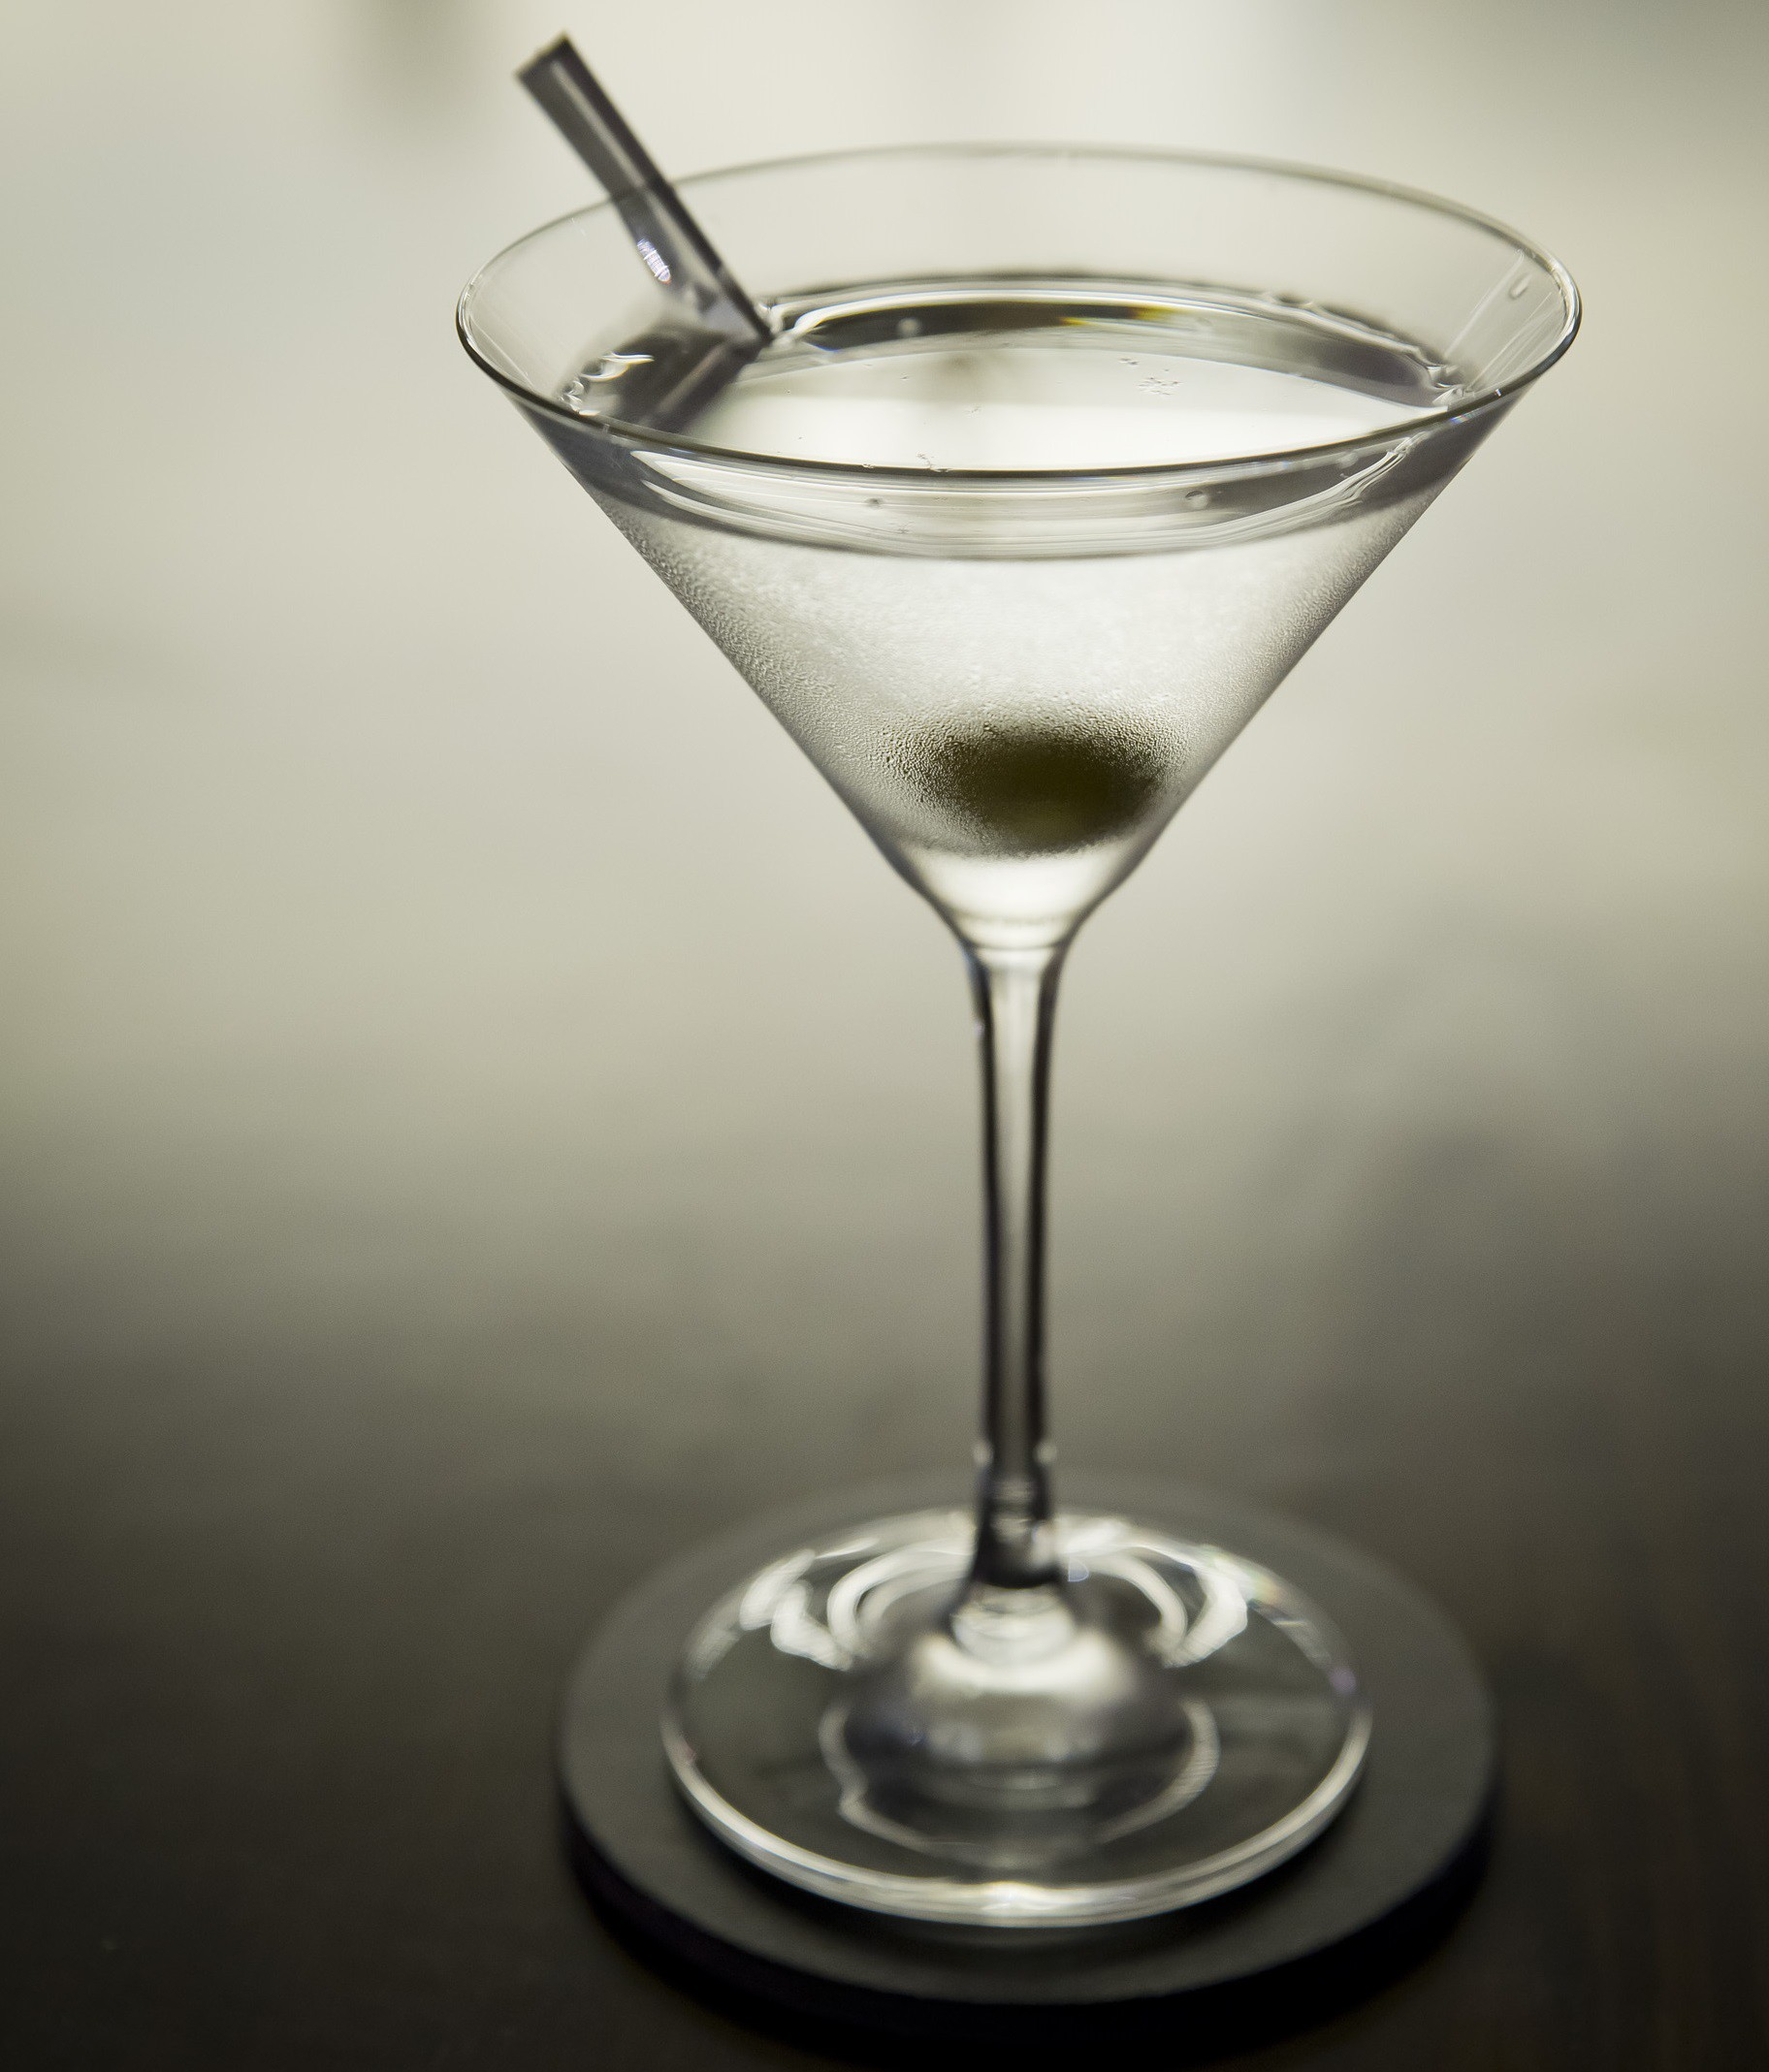 Gin fans – you've been making martinis all wrong photo